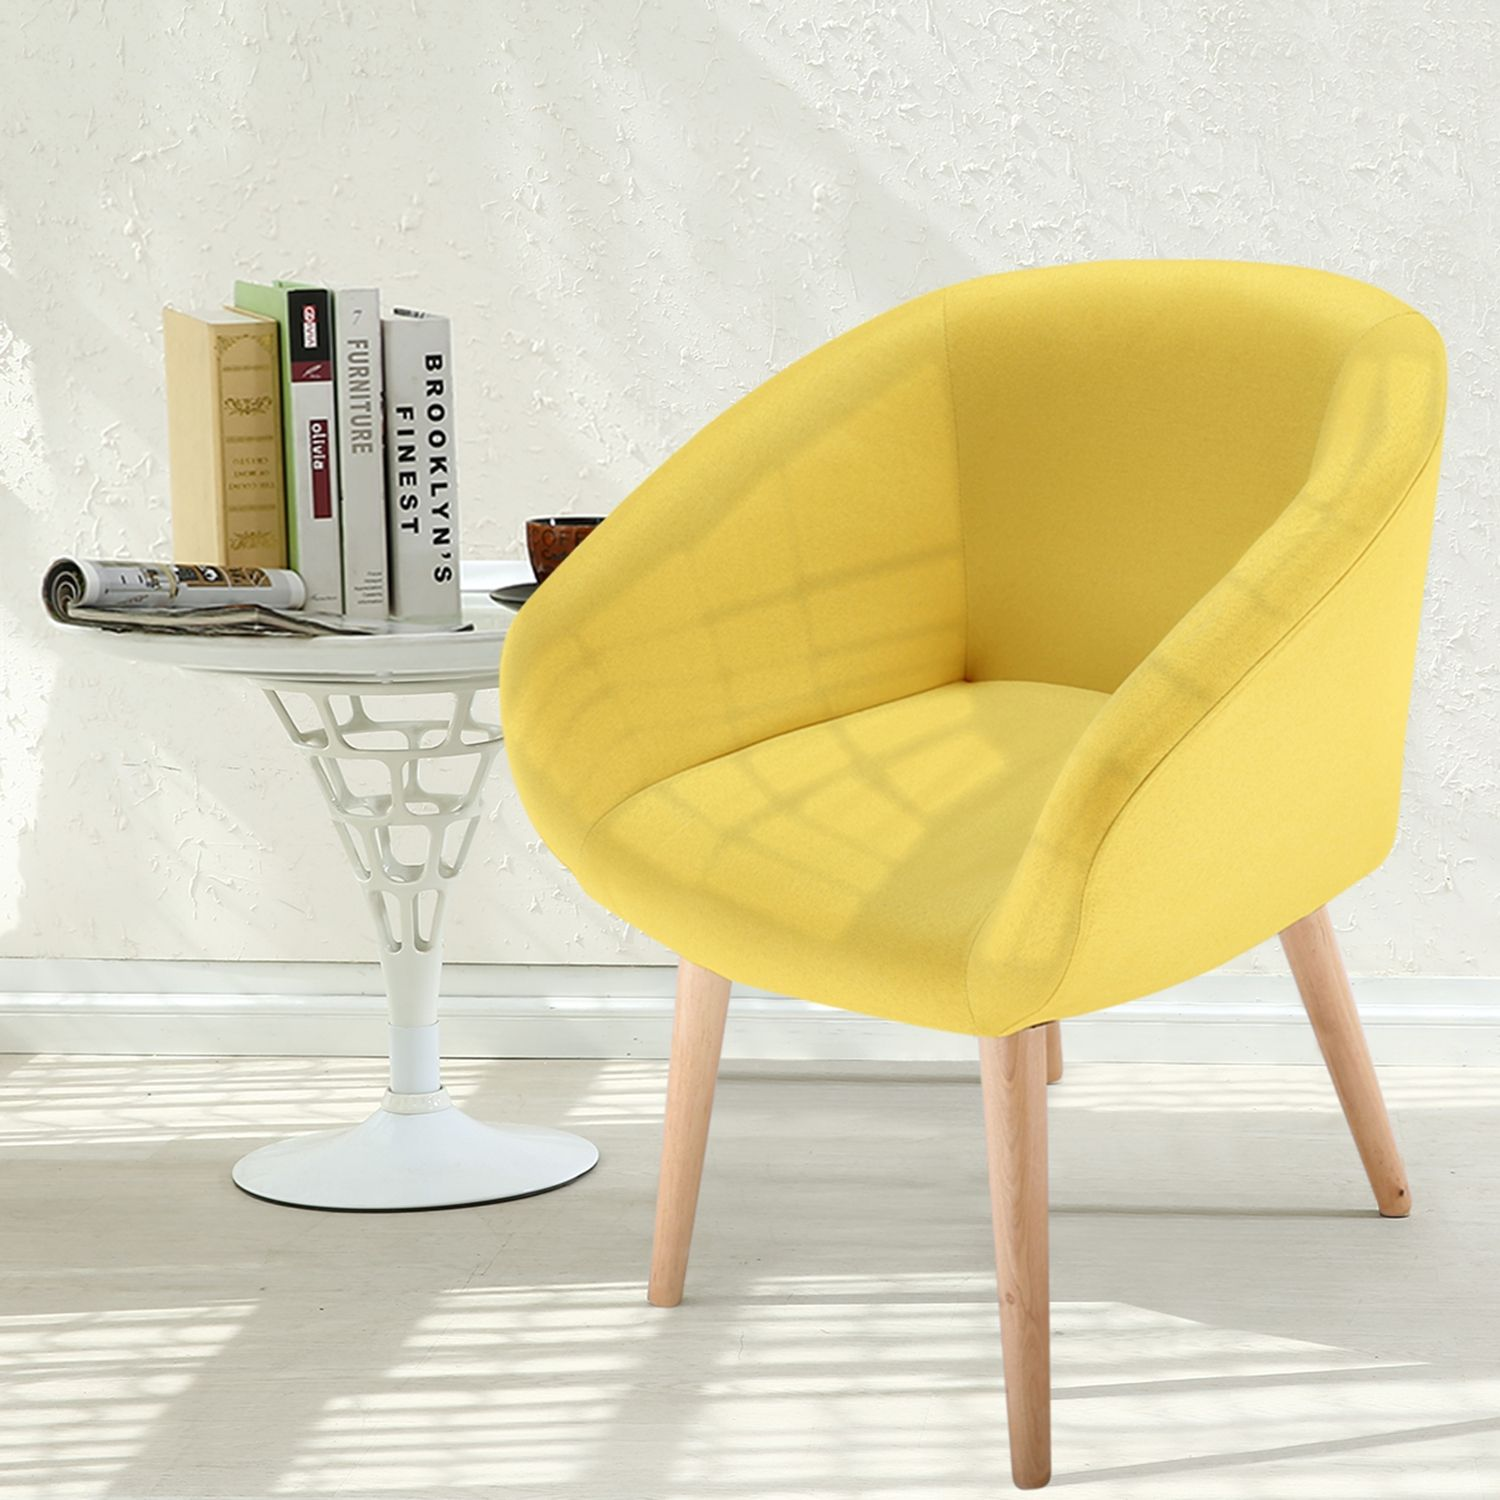 Chaise Fauteuil Style Scandinave Frost Jaune En 2020 Fauteuil Style Scandinave Chaise Fauteuil Chaise Style Scandinave